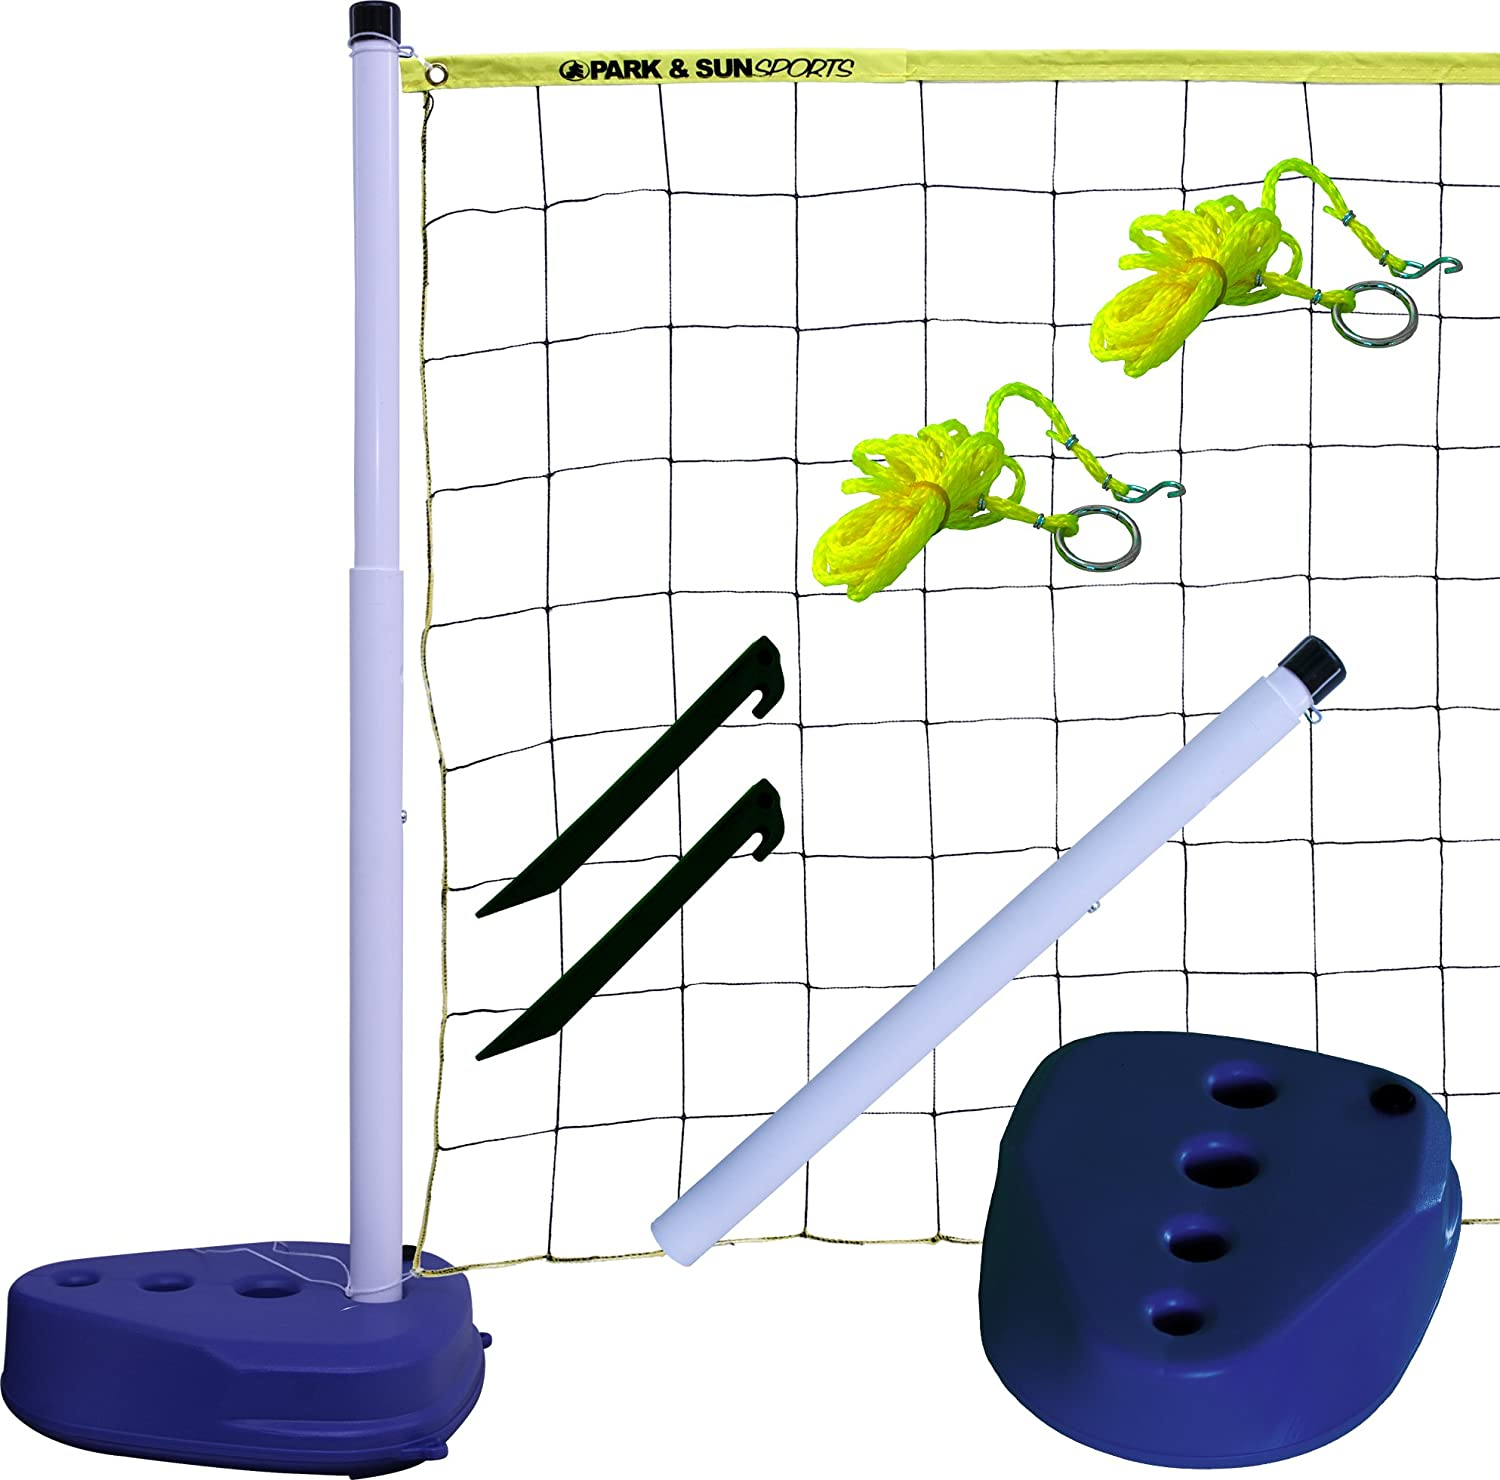 Buy Park Sun Swimming Pool Volleyball Net Online At Low Prices In India Amazon In